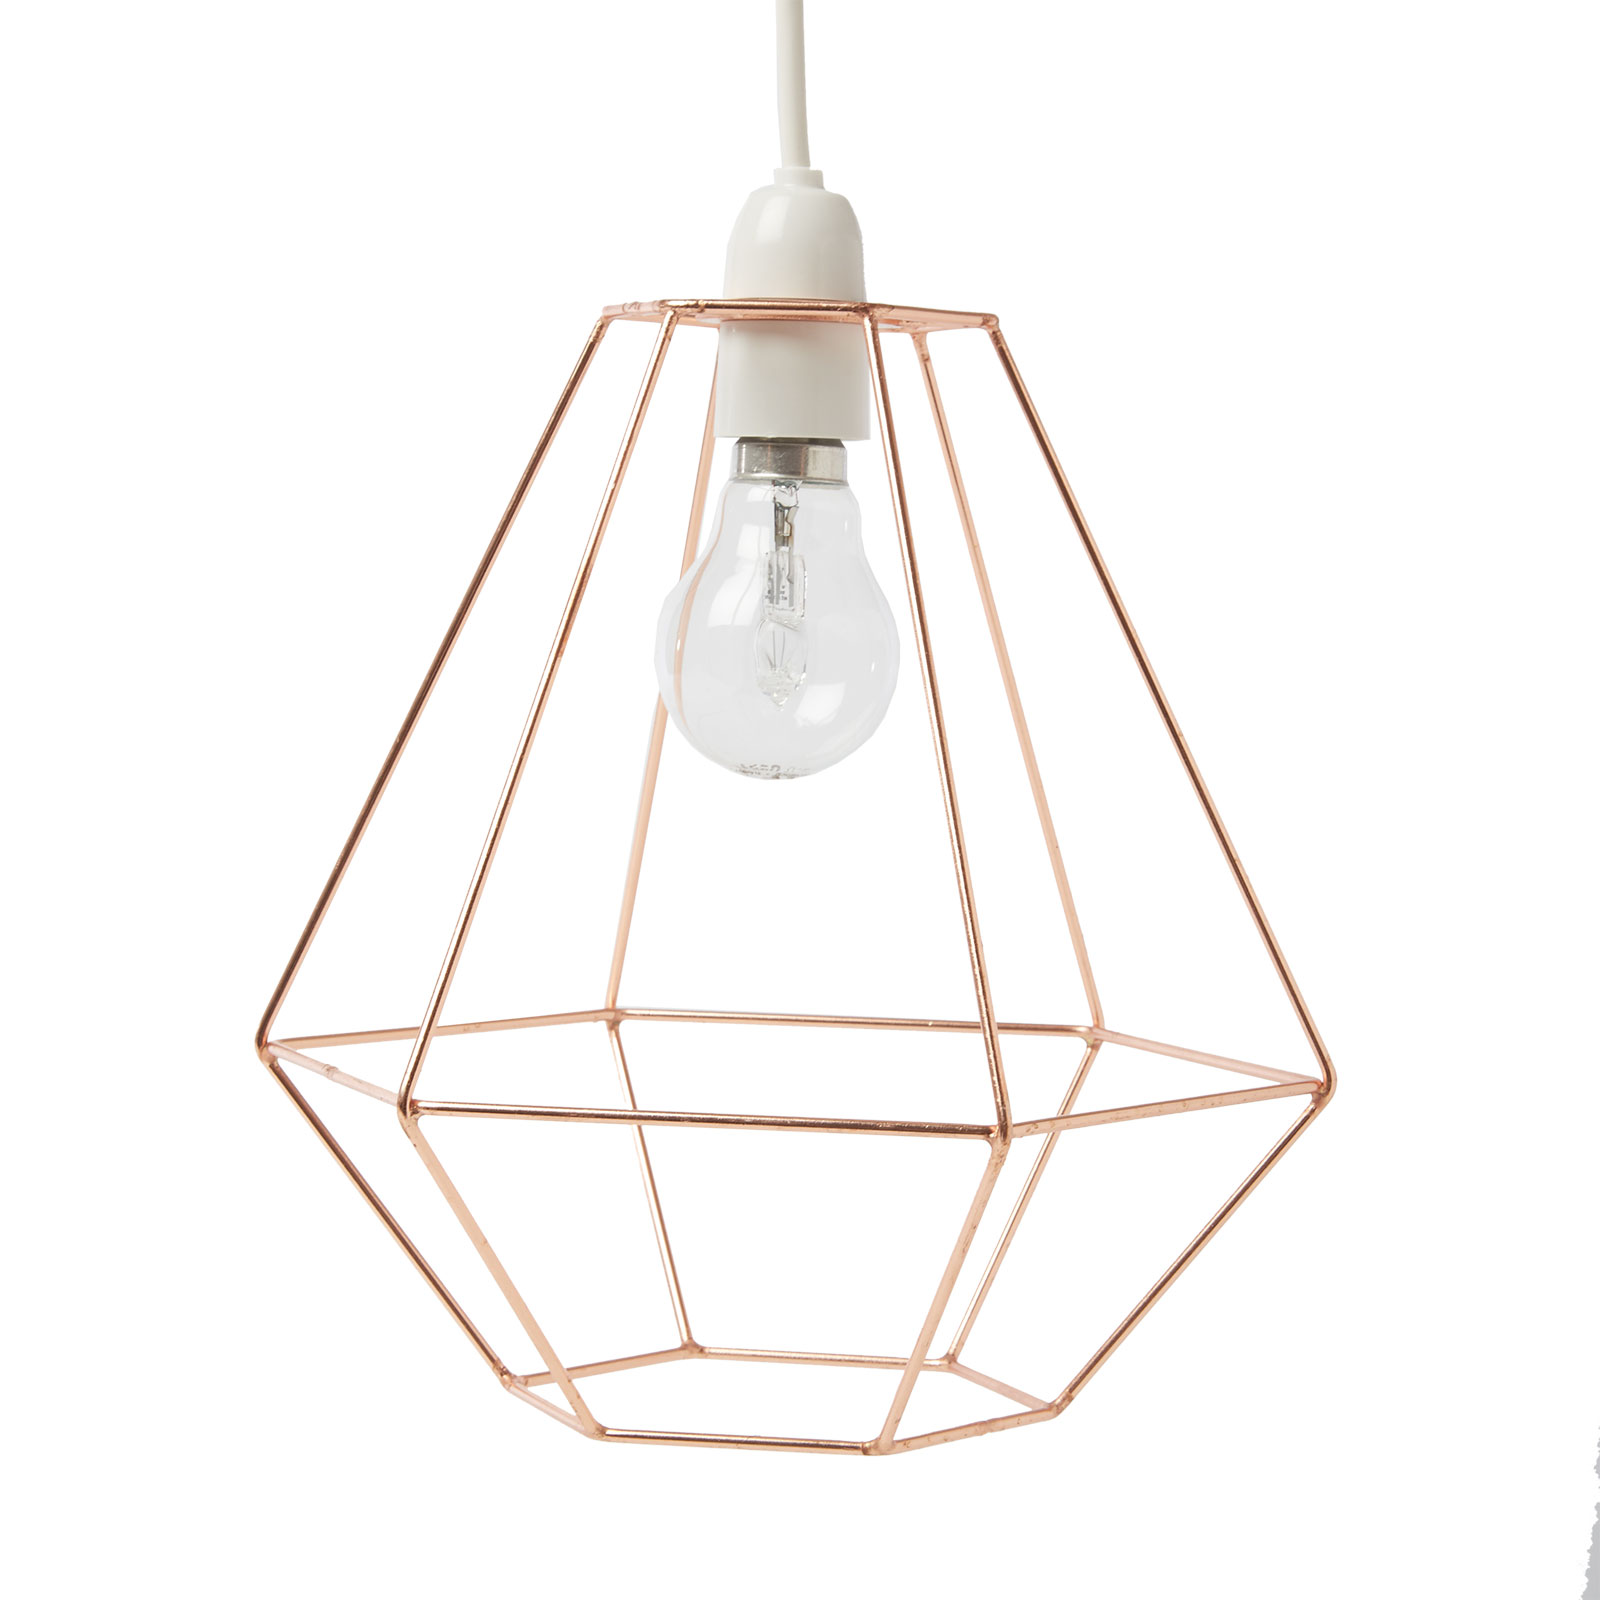 geometric metal copper wire frame ceiling lampshade pendant modern retro style ebay. Black Bedroom Furniture Sets. Home Design Ideas